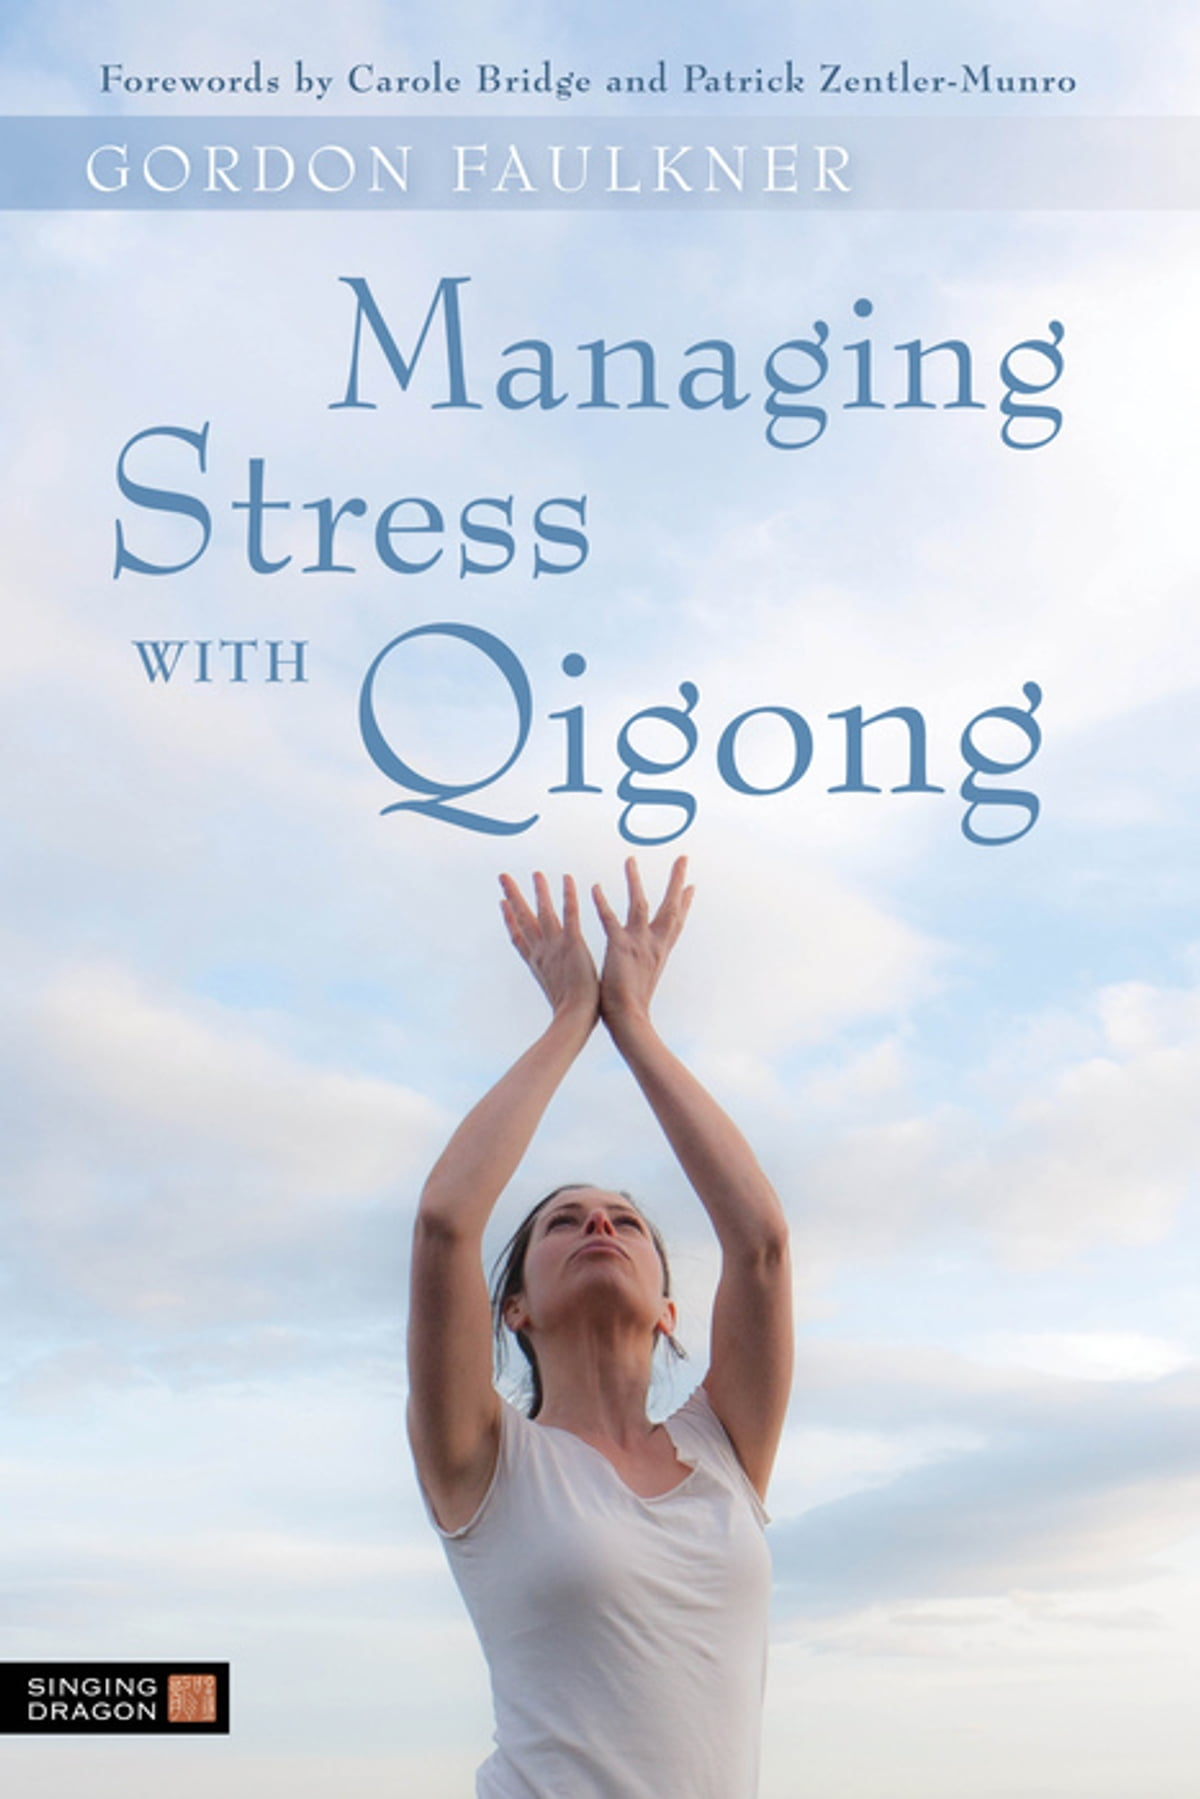 Managing Stress With Qigong Ebook By Gordon Faulkner border=